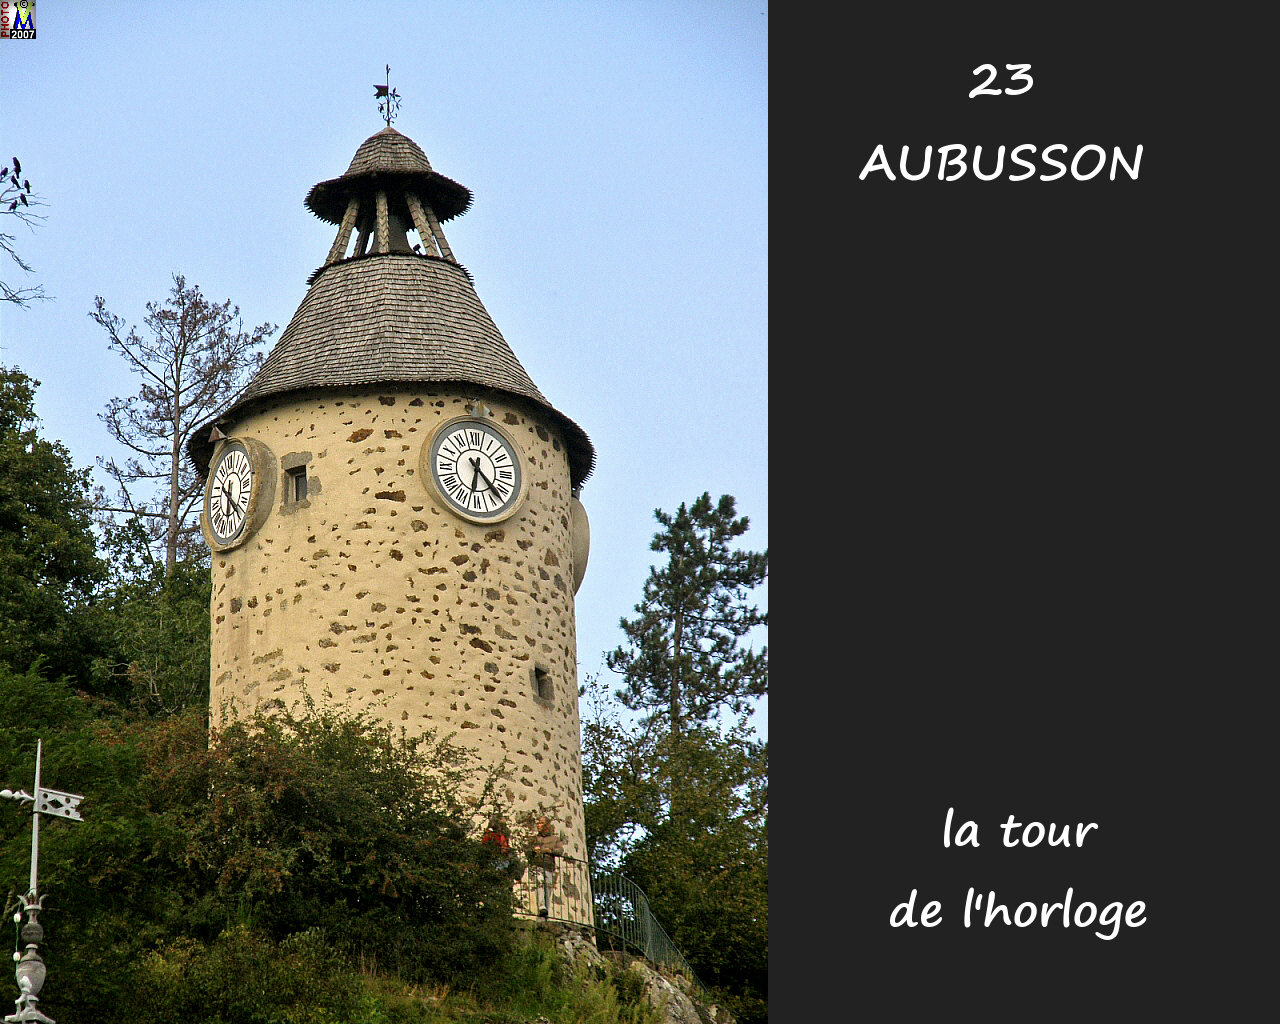 23AUBUSSON_tour_102.jpg